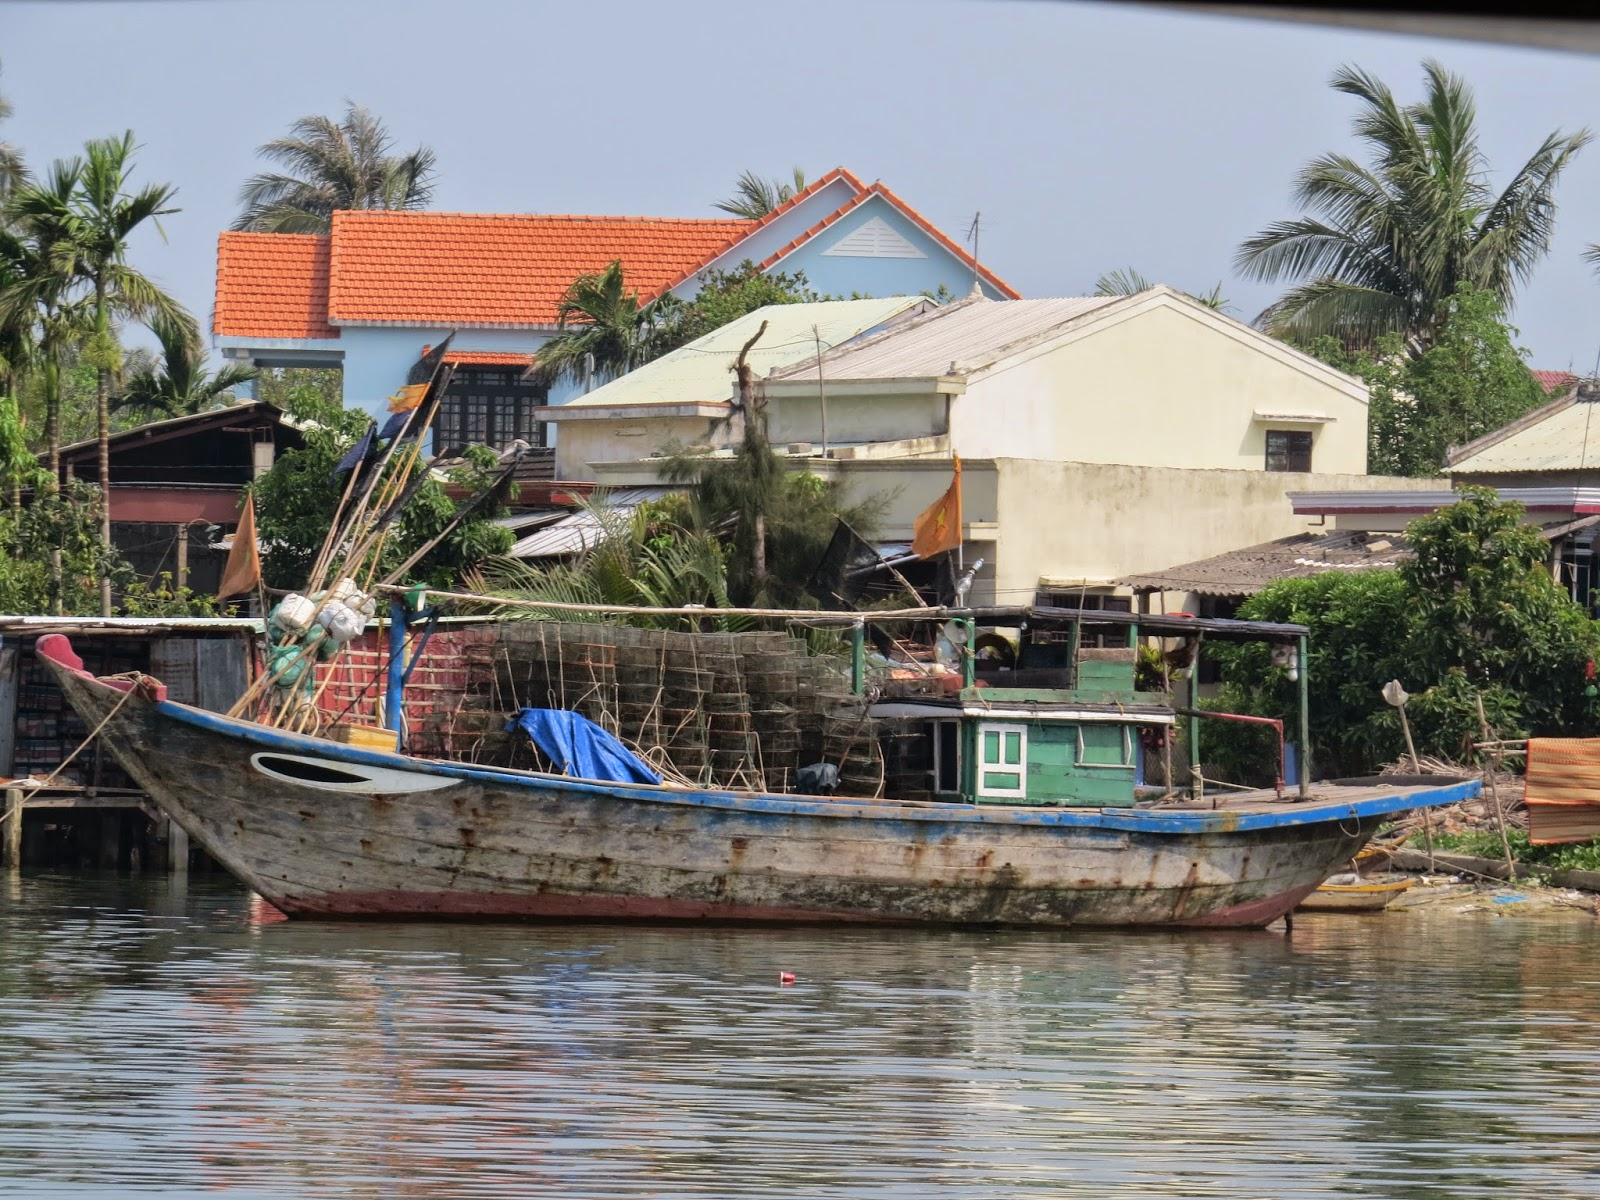 Phuoc Hai fishing village